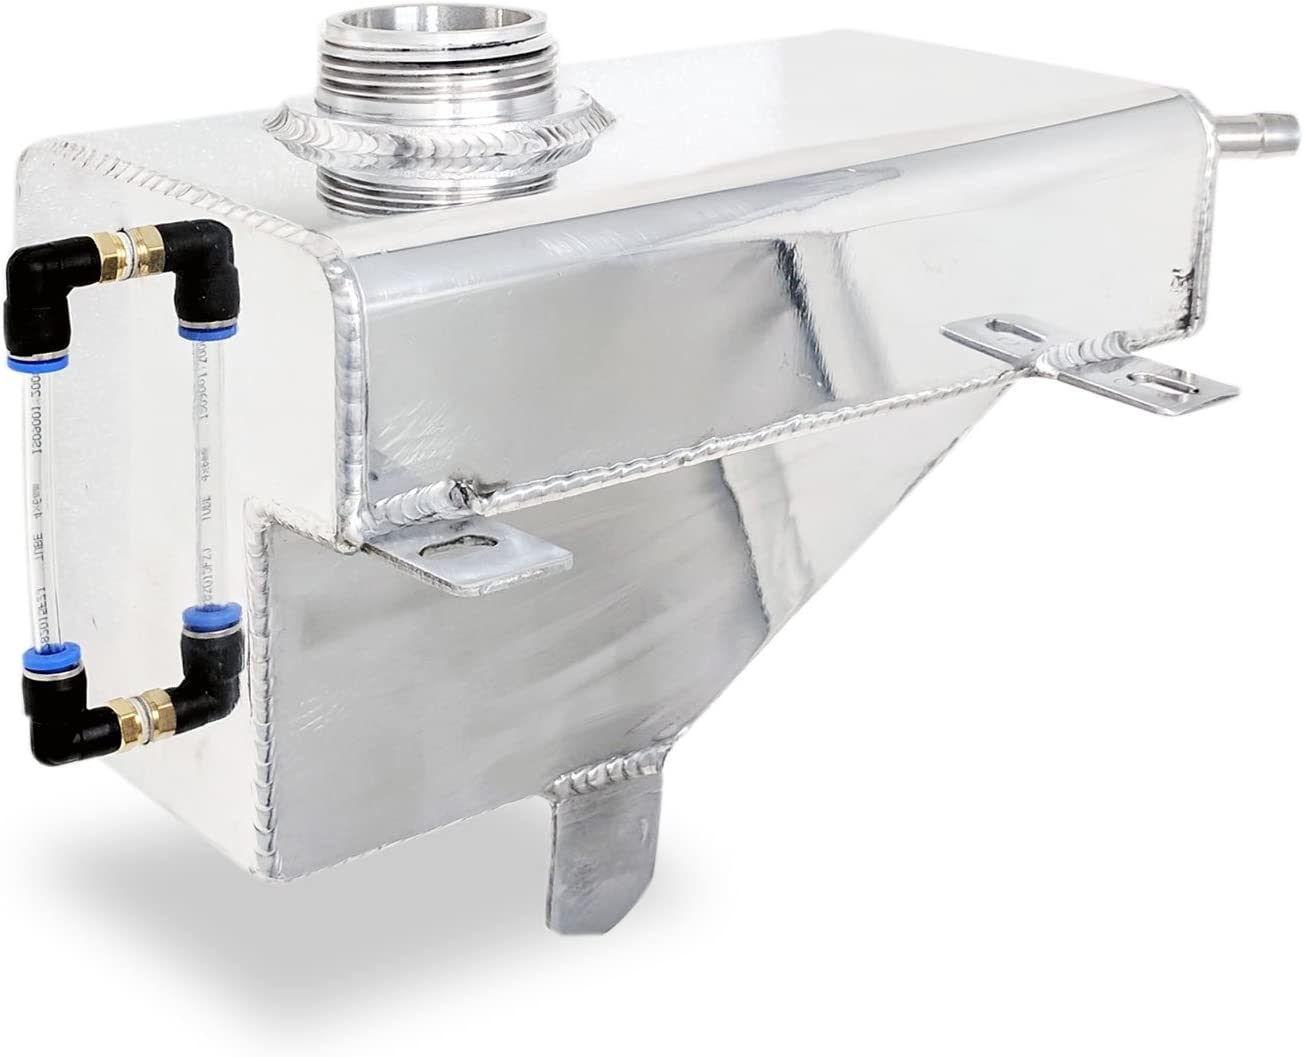 Rev9 AT-FM05 Coolant Overflow Expansion Tank Aluminum for Ford Mustang 05-10 All Models